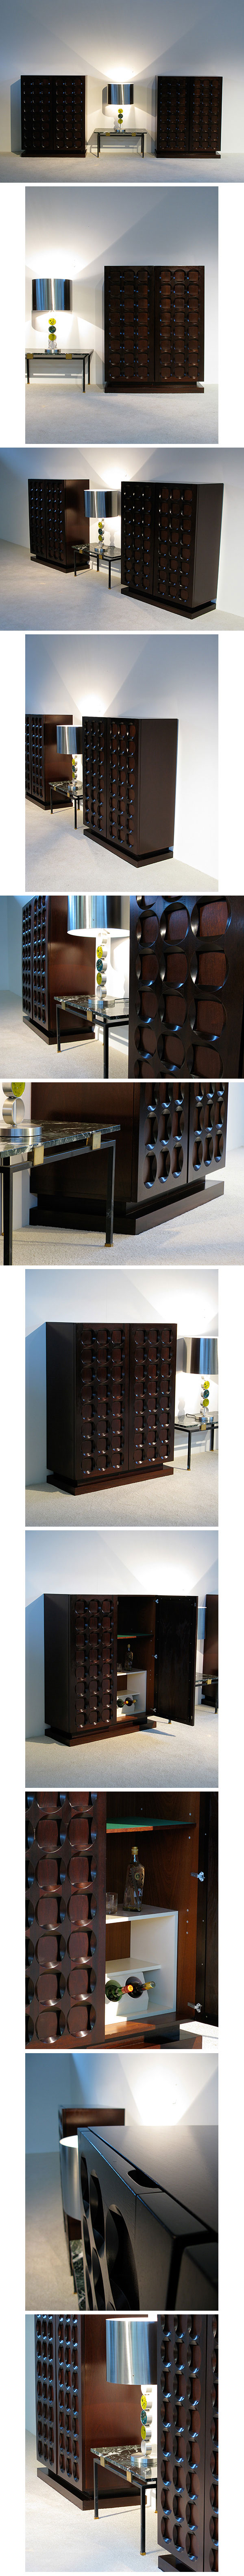 1970, graphic, Belgium, modern, sideboards, cabinet